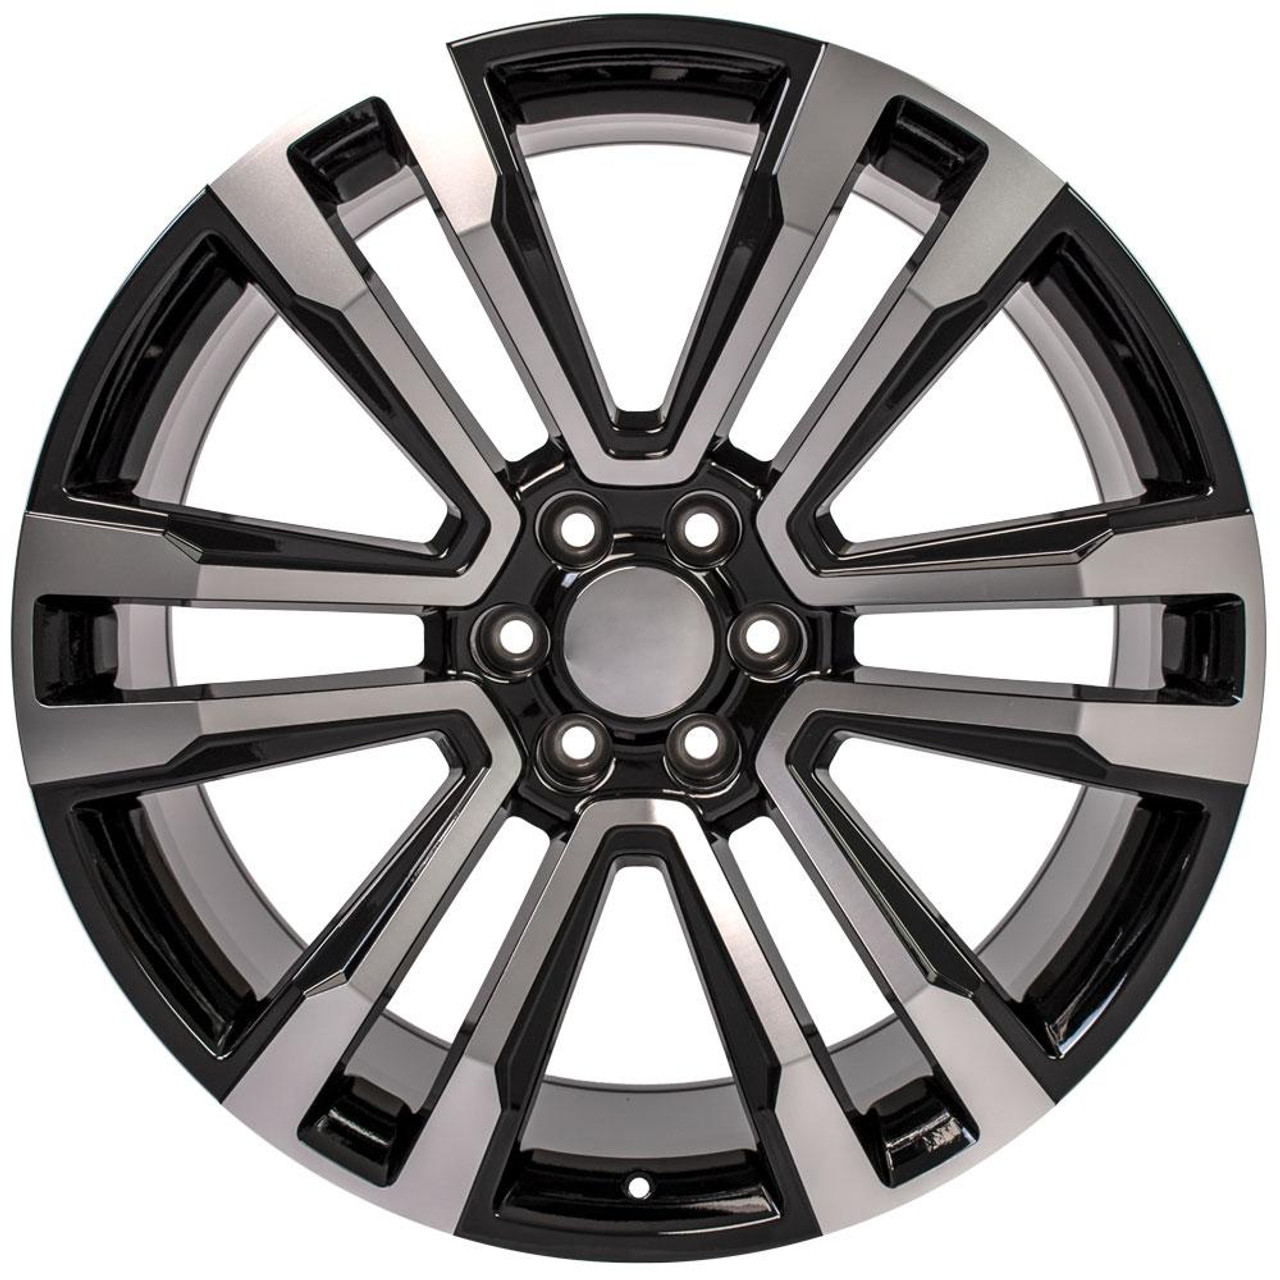 """Black and Machine 24"""" Denali Style Split Spoke Wheels for GMC and Chevy 1500 Trucks and SUVs"""